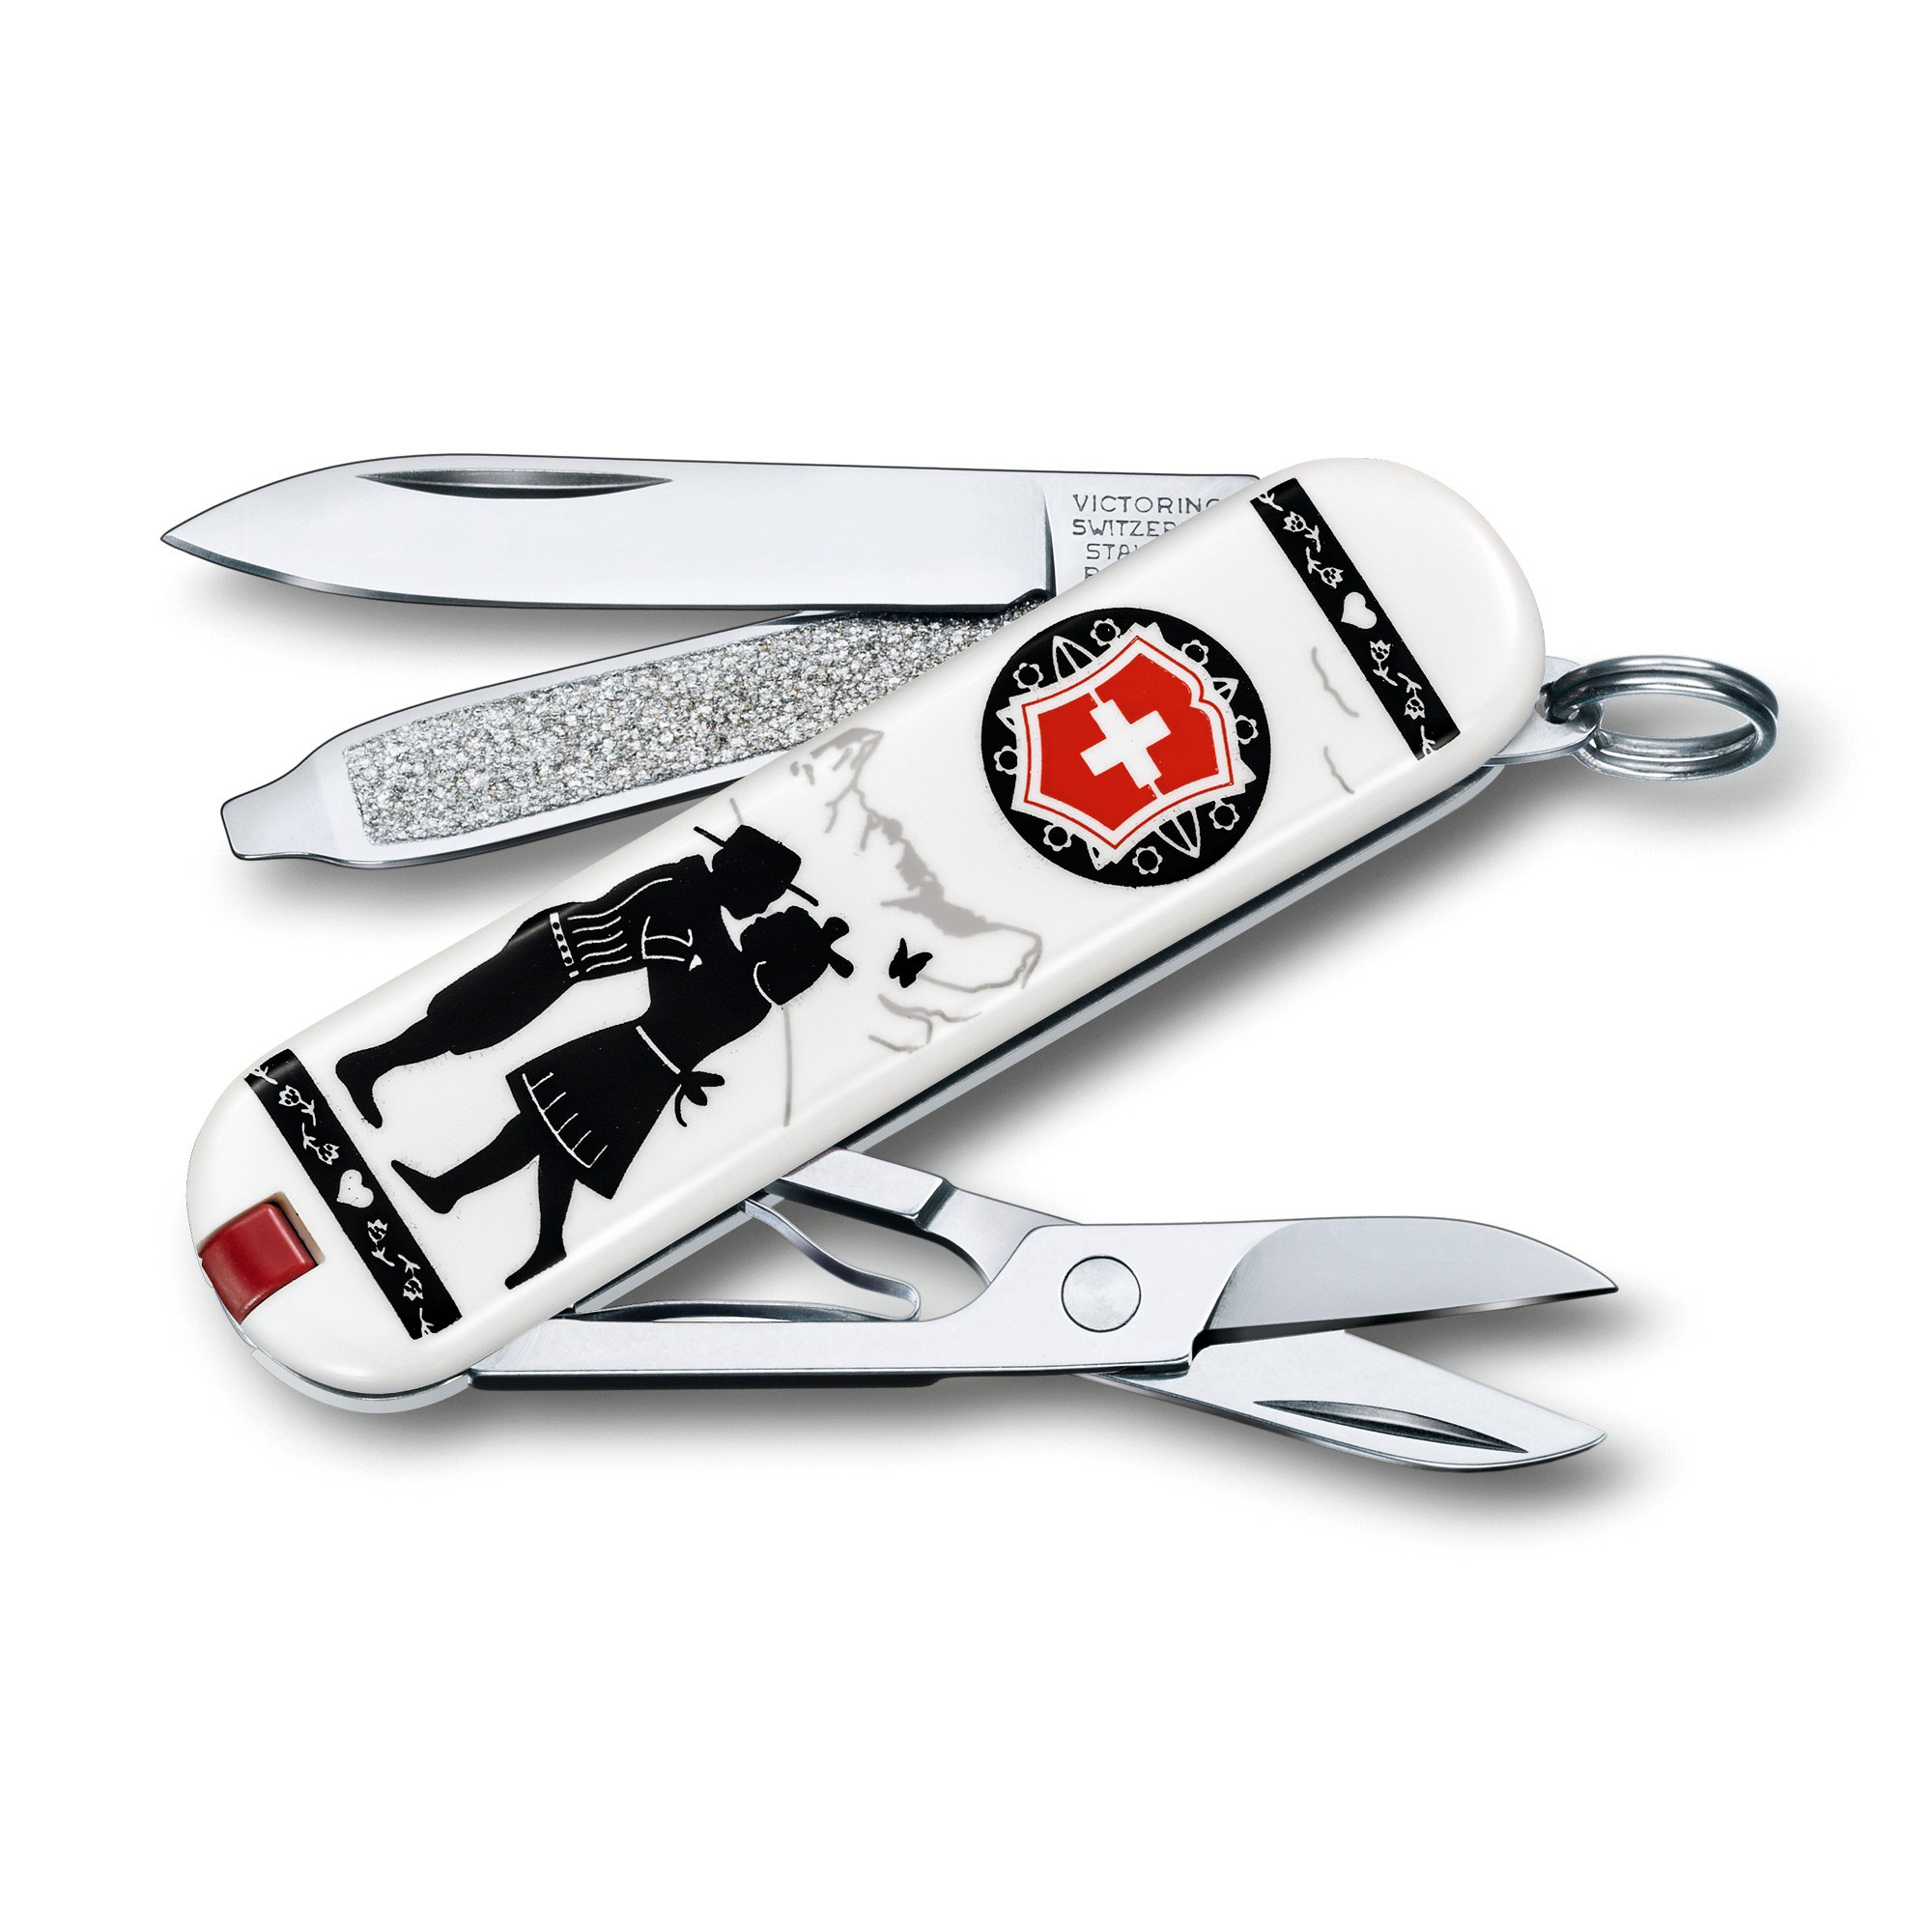 Victorinox Swiss Army Classic Sd Pocket Knife, Alps Love